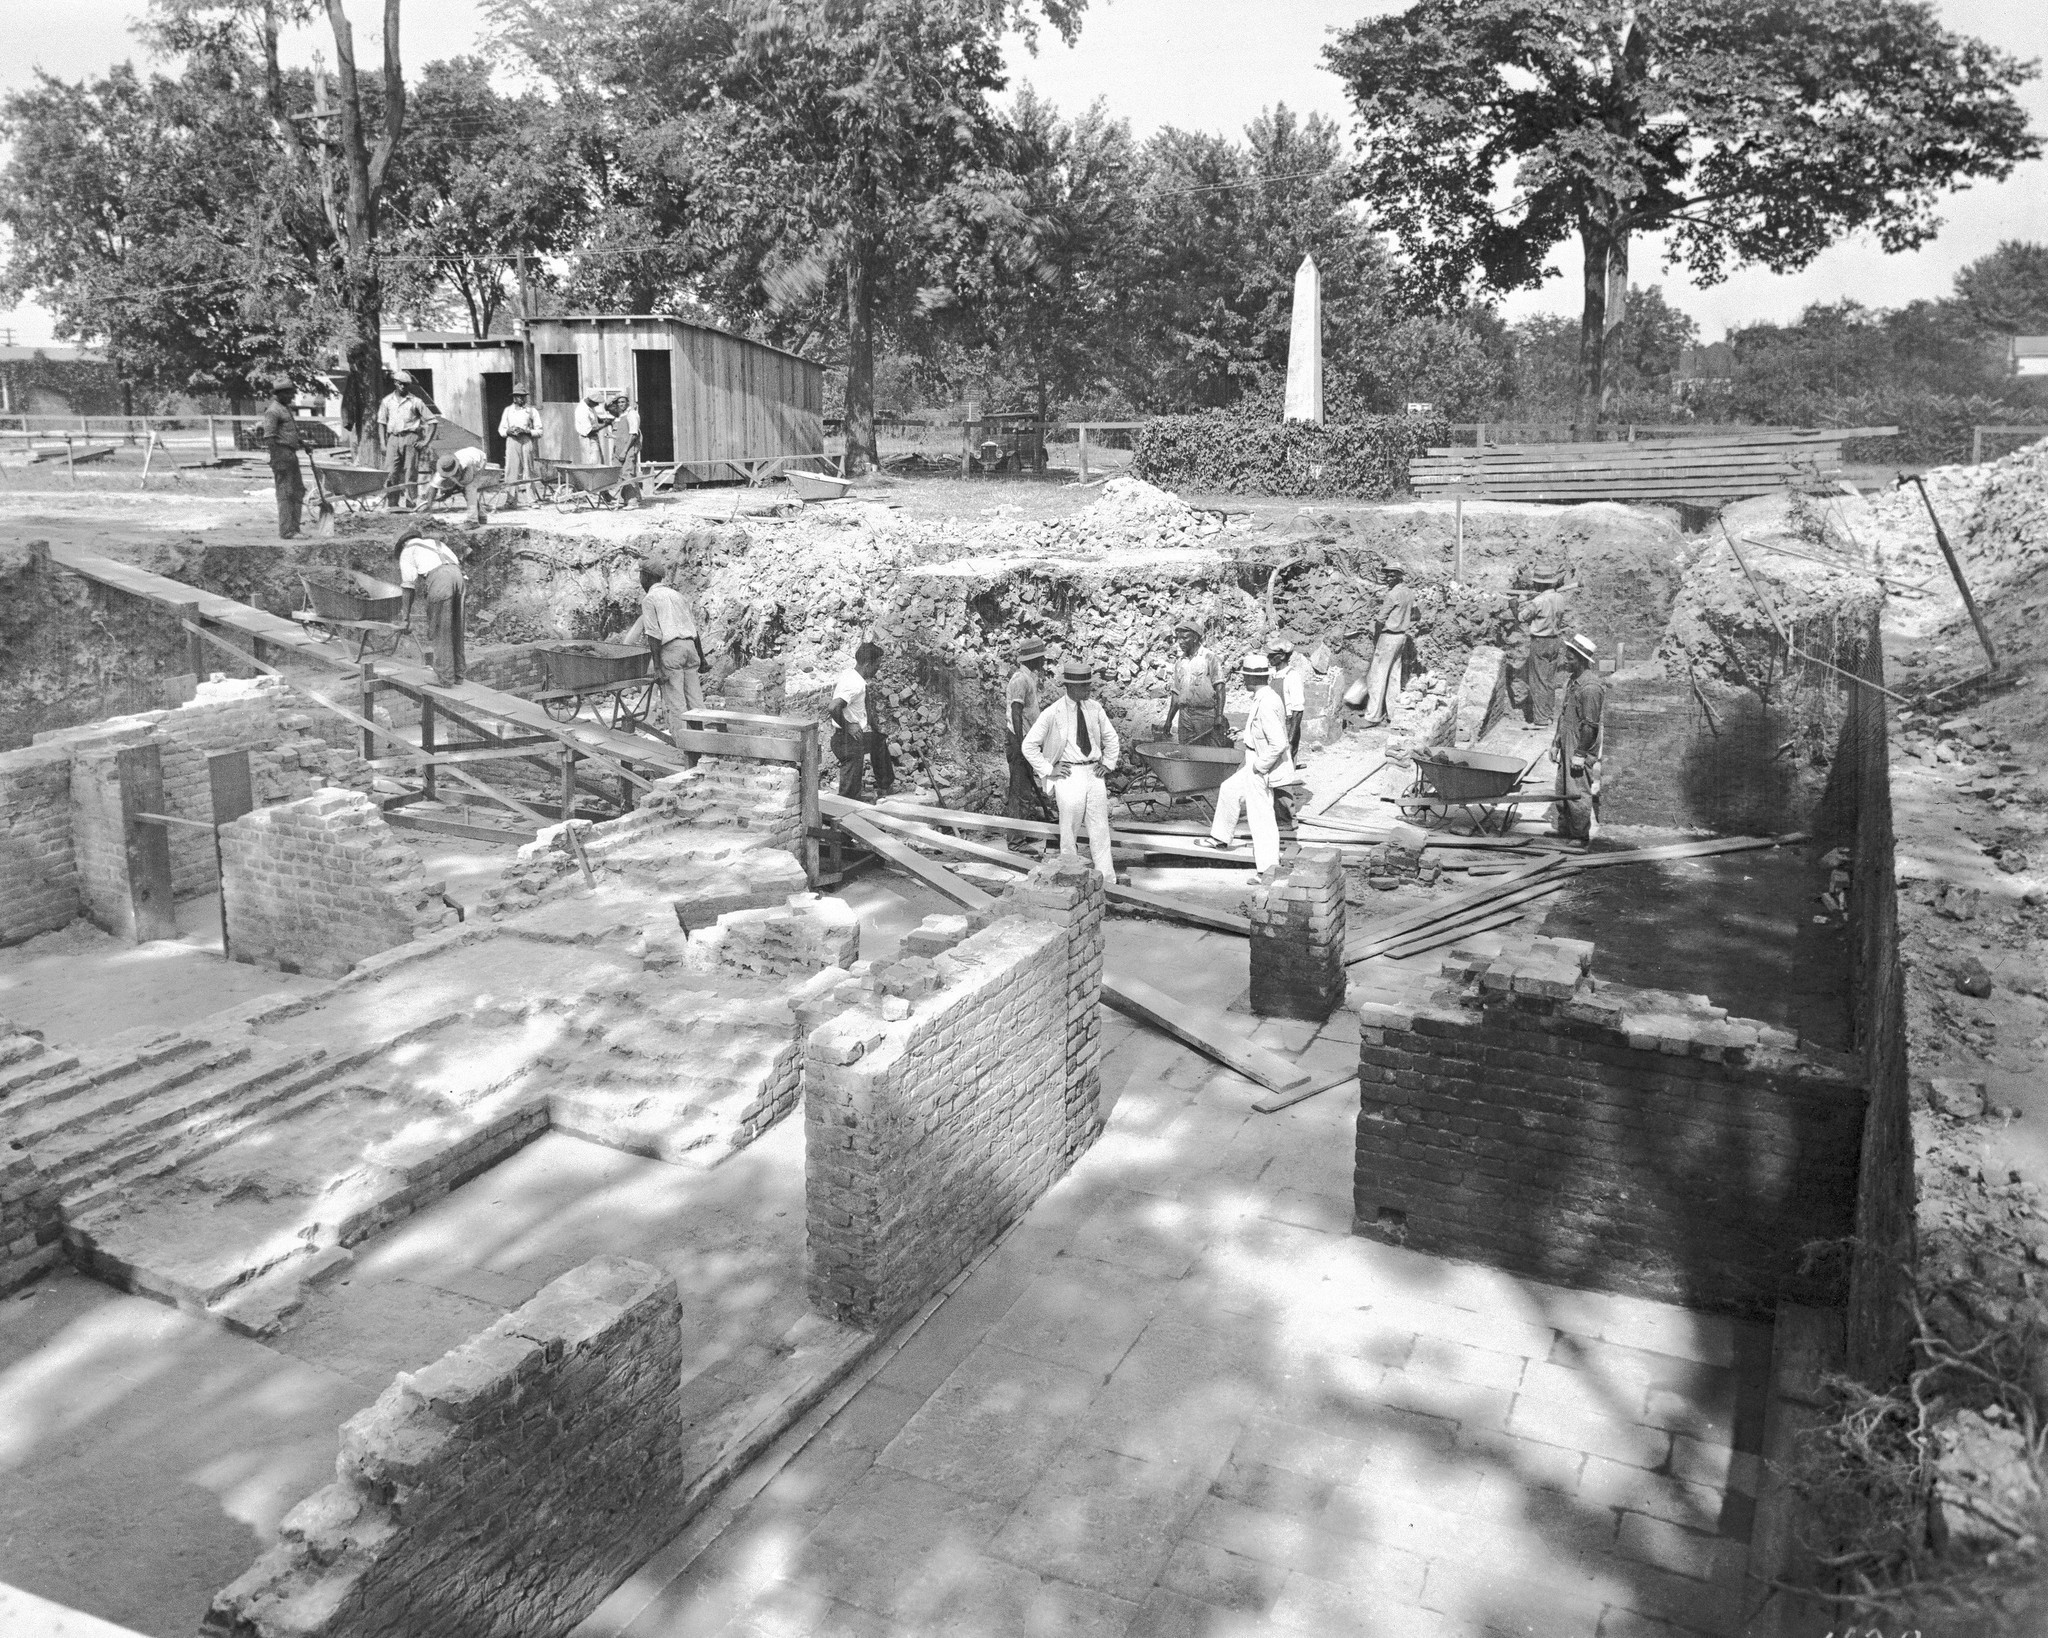 Archaeologists uncovered the remains of the Palace's foundation as well as many artifacts in 1930. Image obtained from the Daily Press.